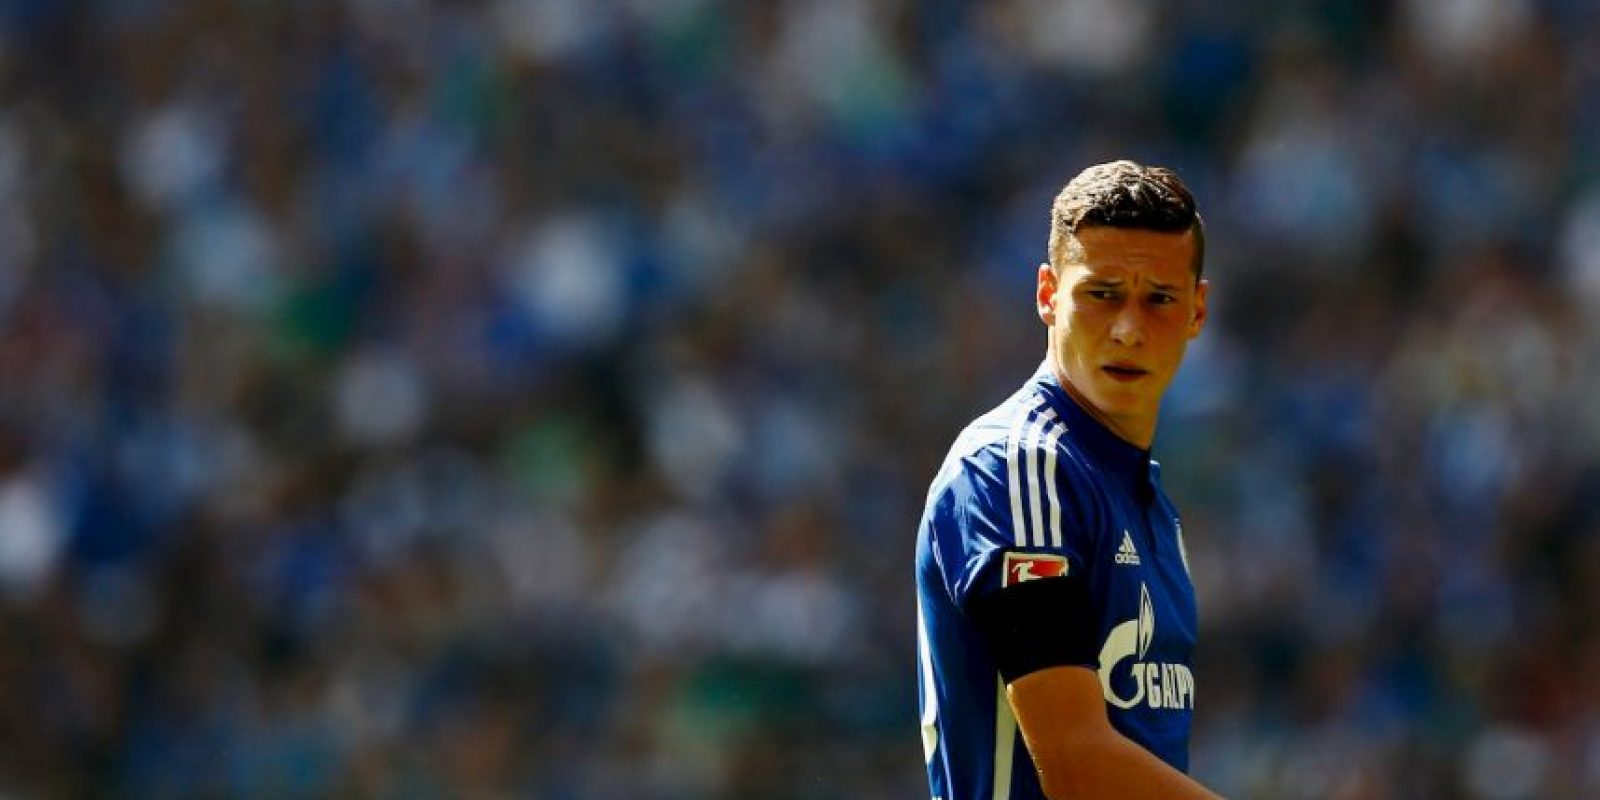 9. Julian Draxler Foto: Getty Images